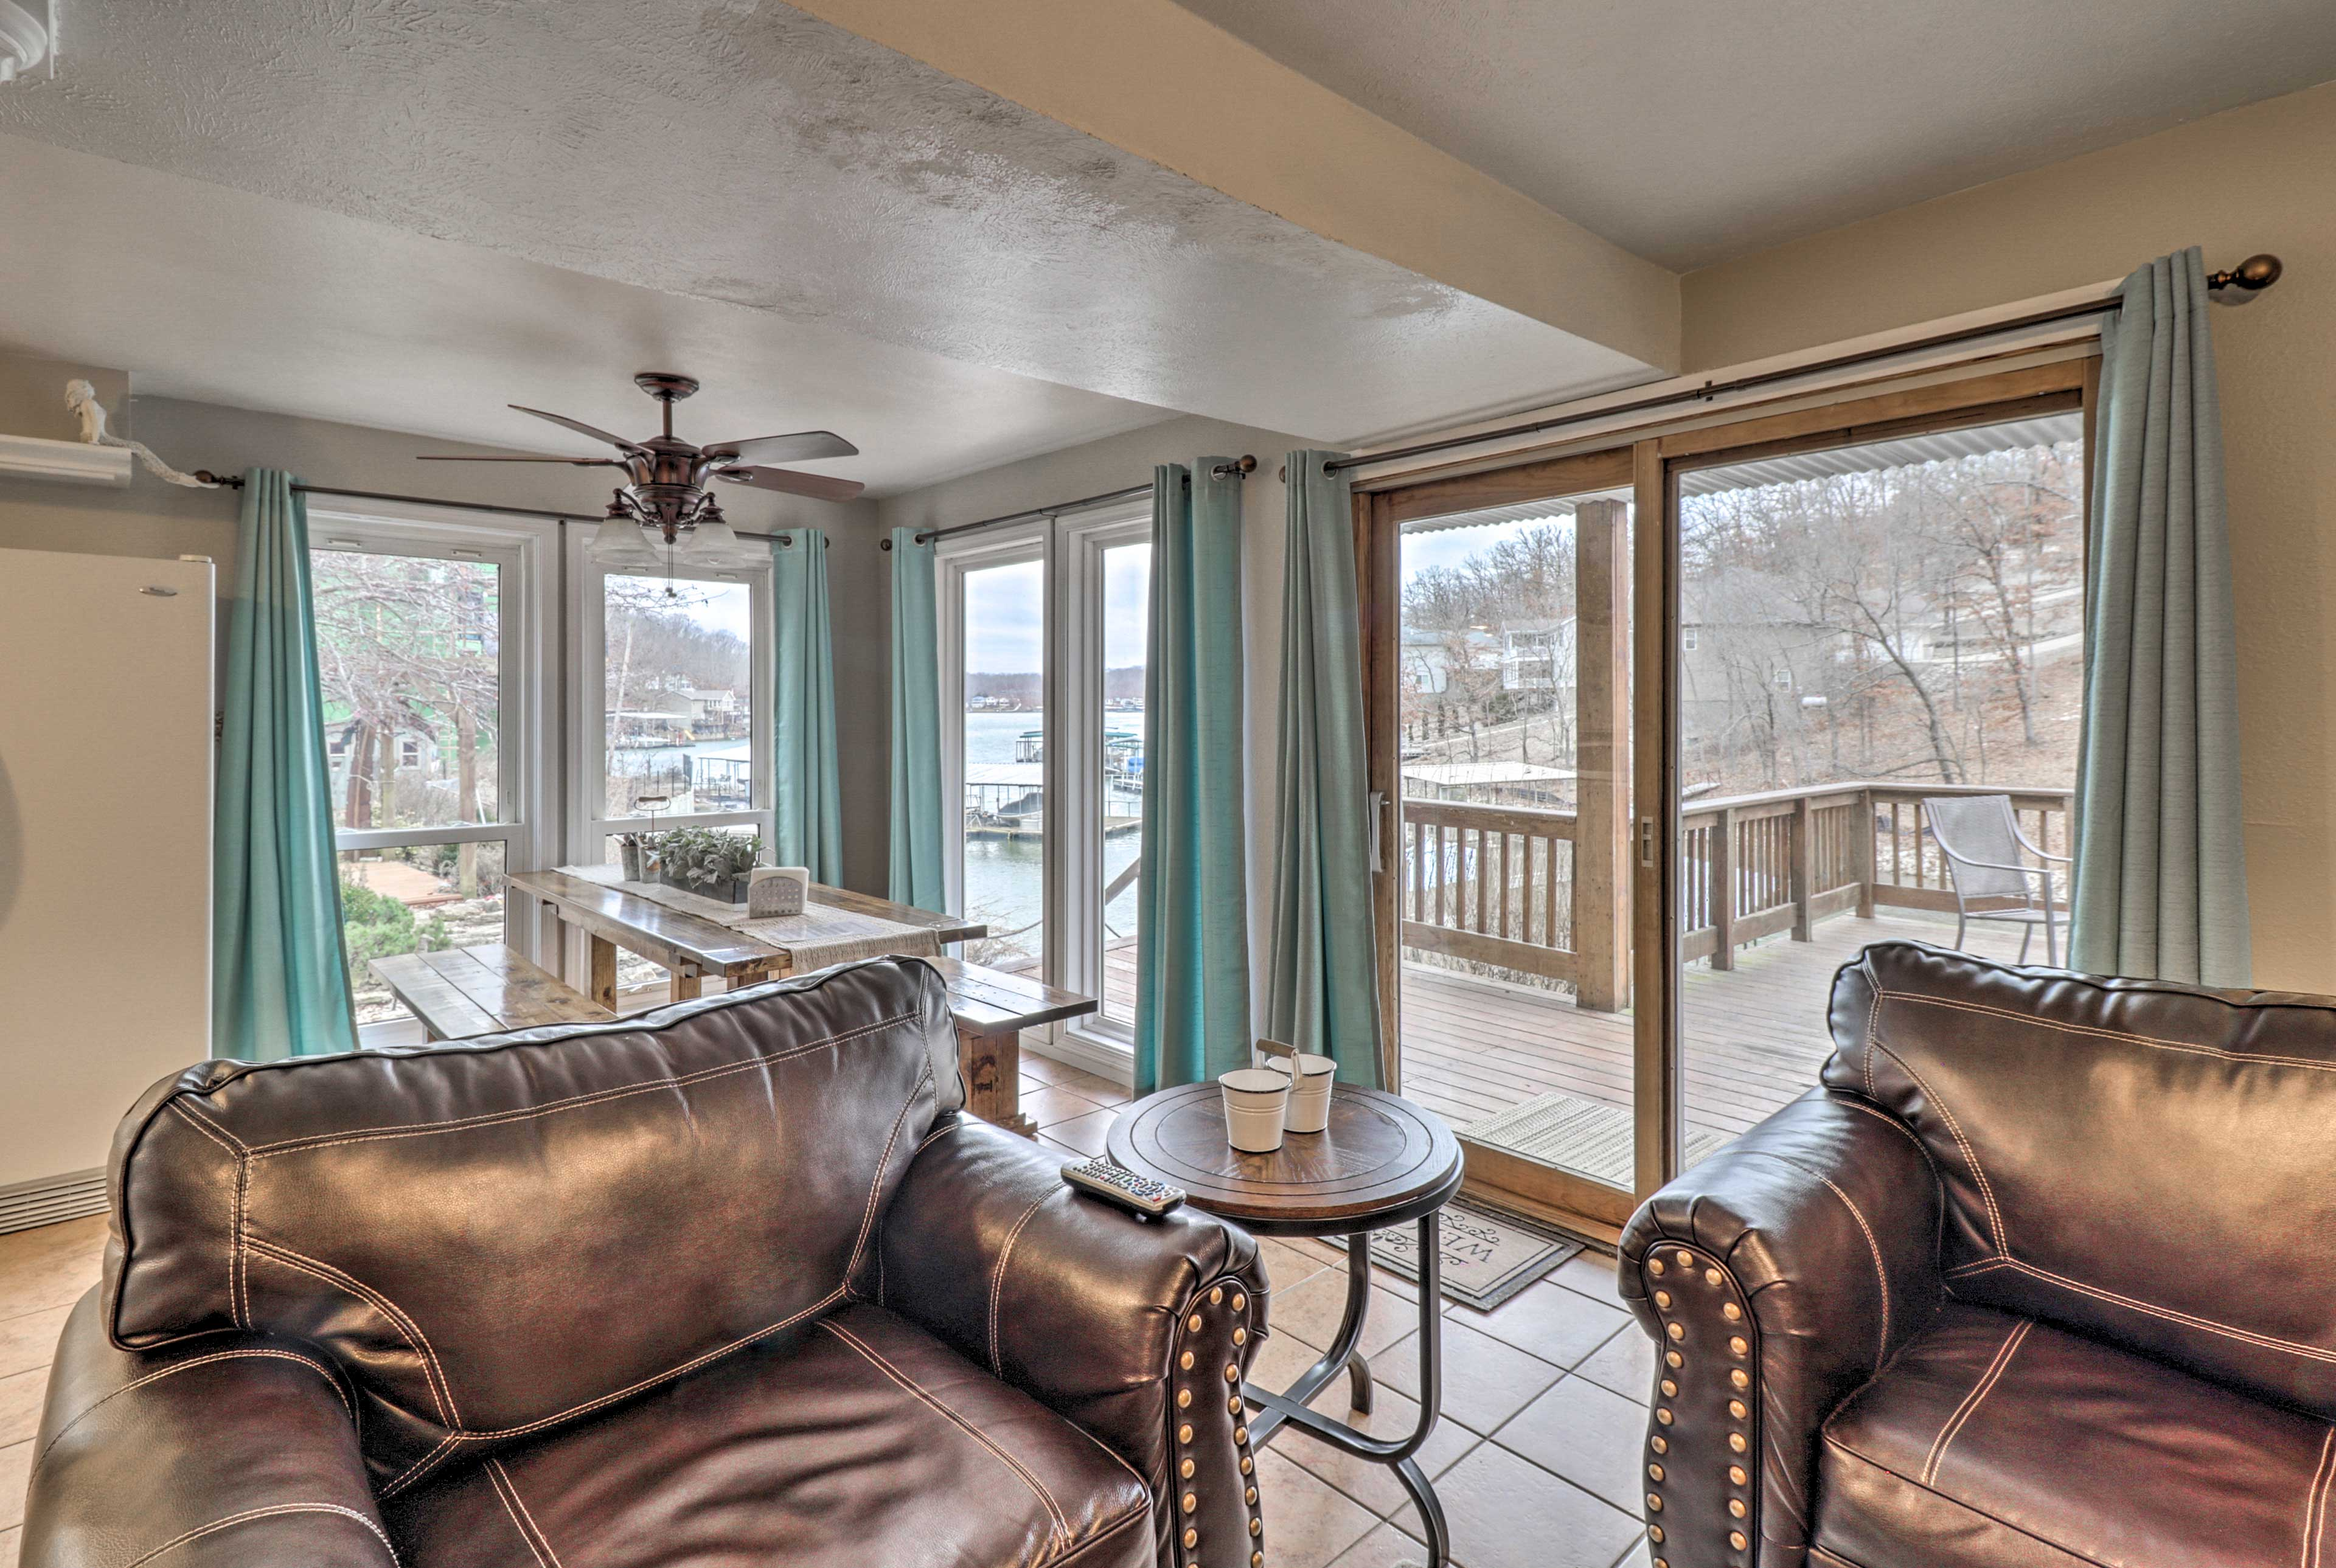 Sliding glass doors to the deck & floor-to-ceiling windows allow in ample light.